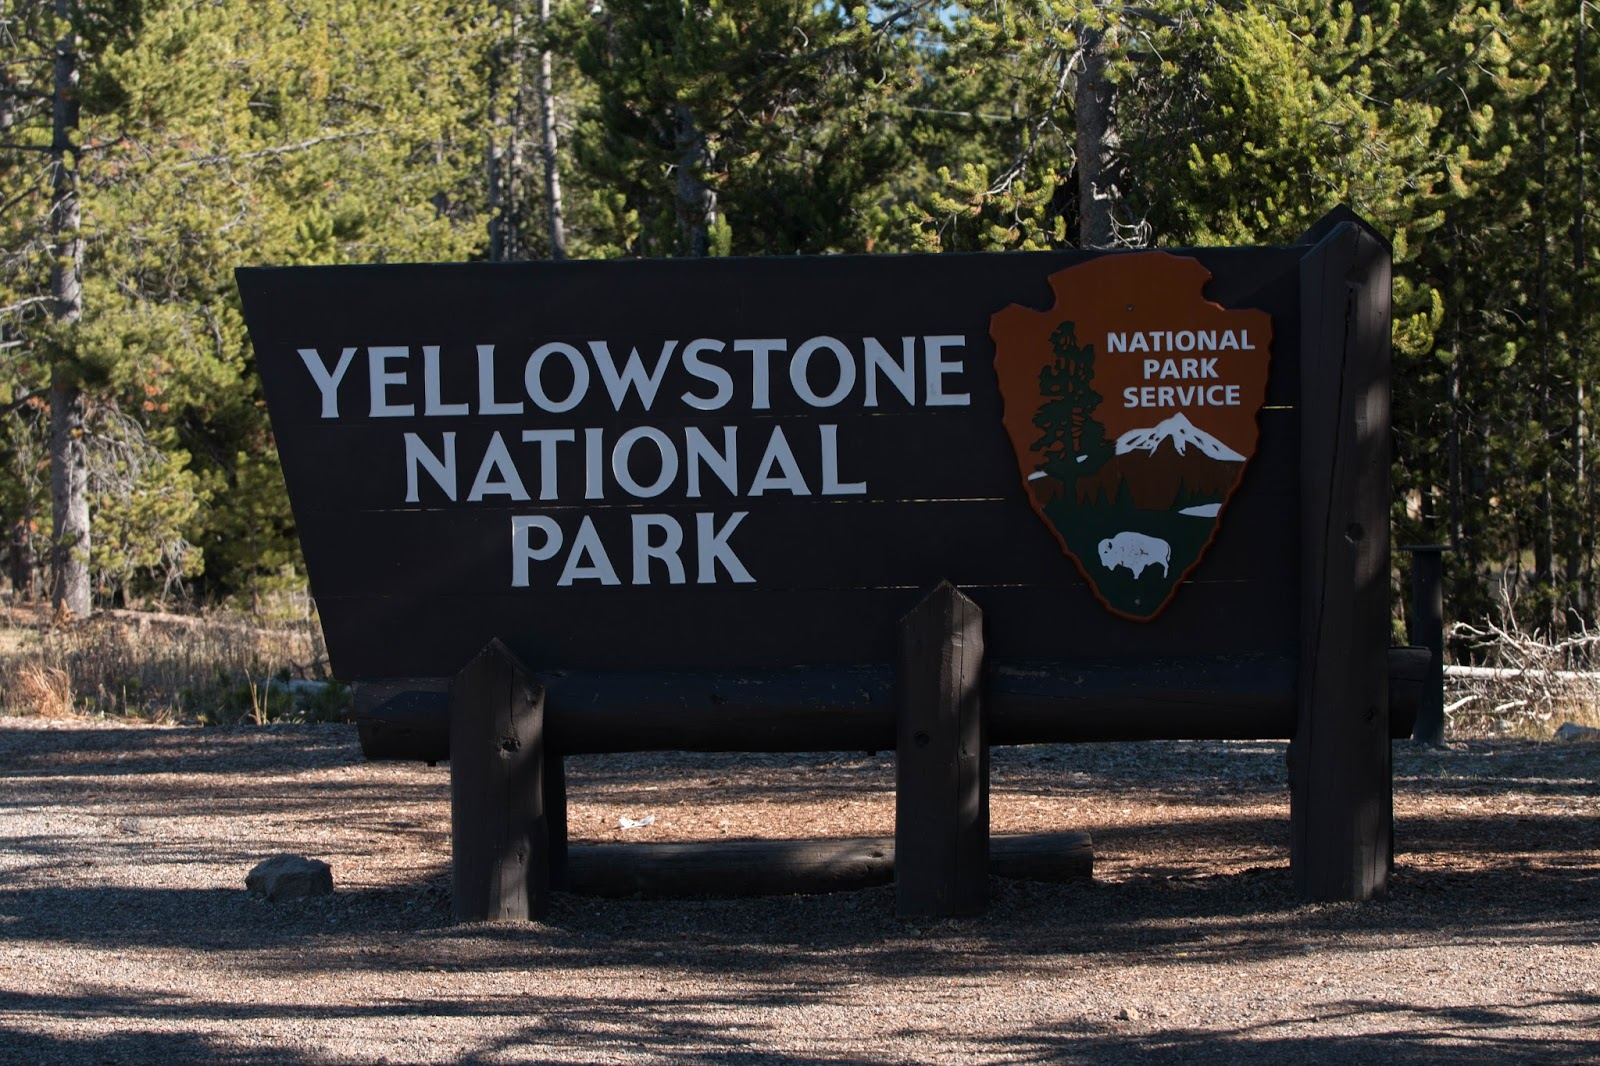 """yellowstone national park essay Article: yellowstone national park is a volcano yellowstone, we feel, is a very, very safe place to visit,"""" says hank heasler, one of two park geologists at yellowstone it's true that acrid, piping-hot groundwater flows just under the park's rocky plateau, forming a landscape bubbling, steaming, and spraying with hydrothermal activity."""